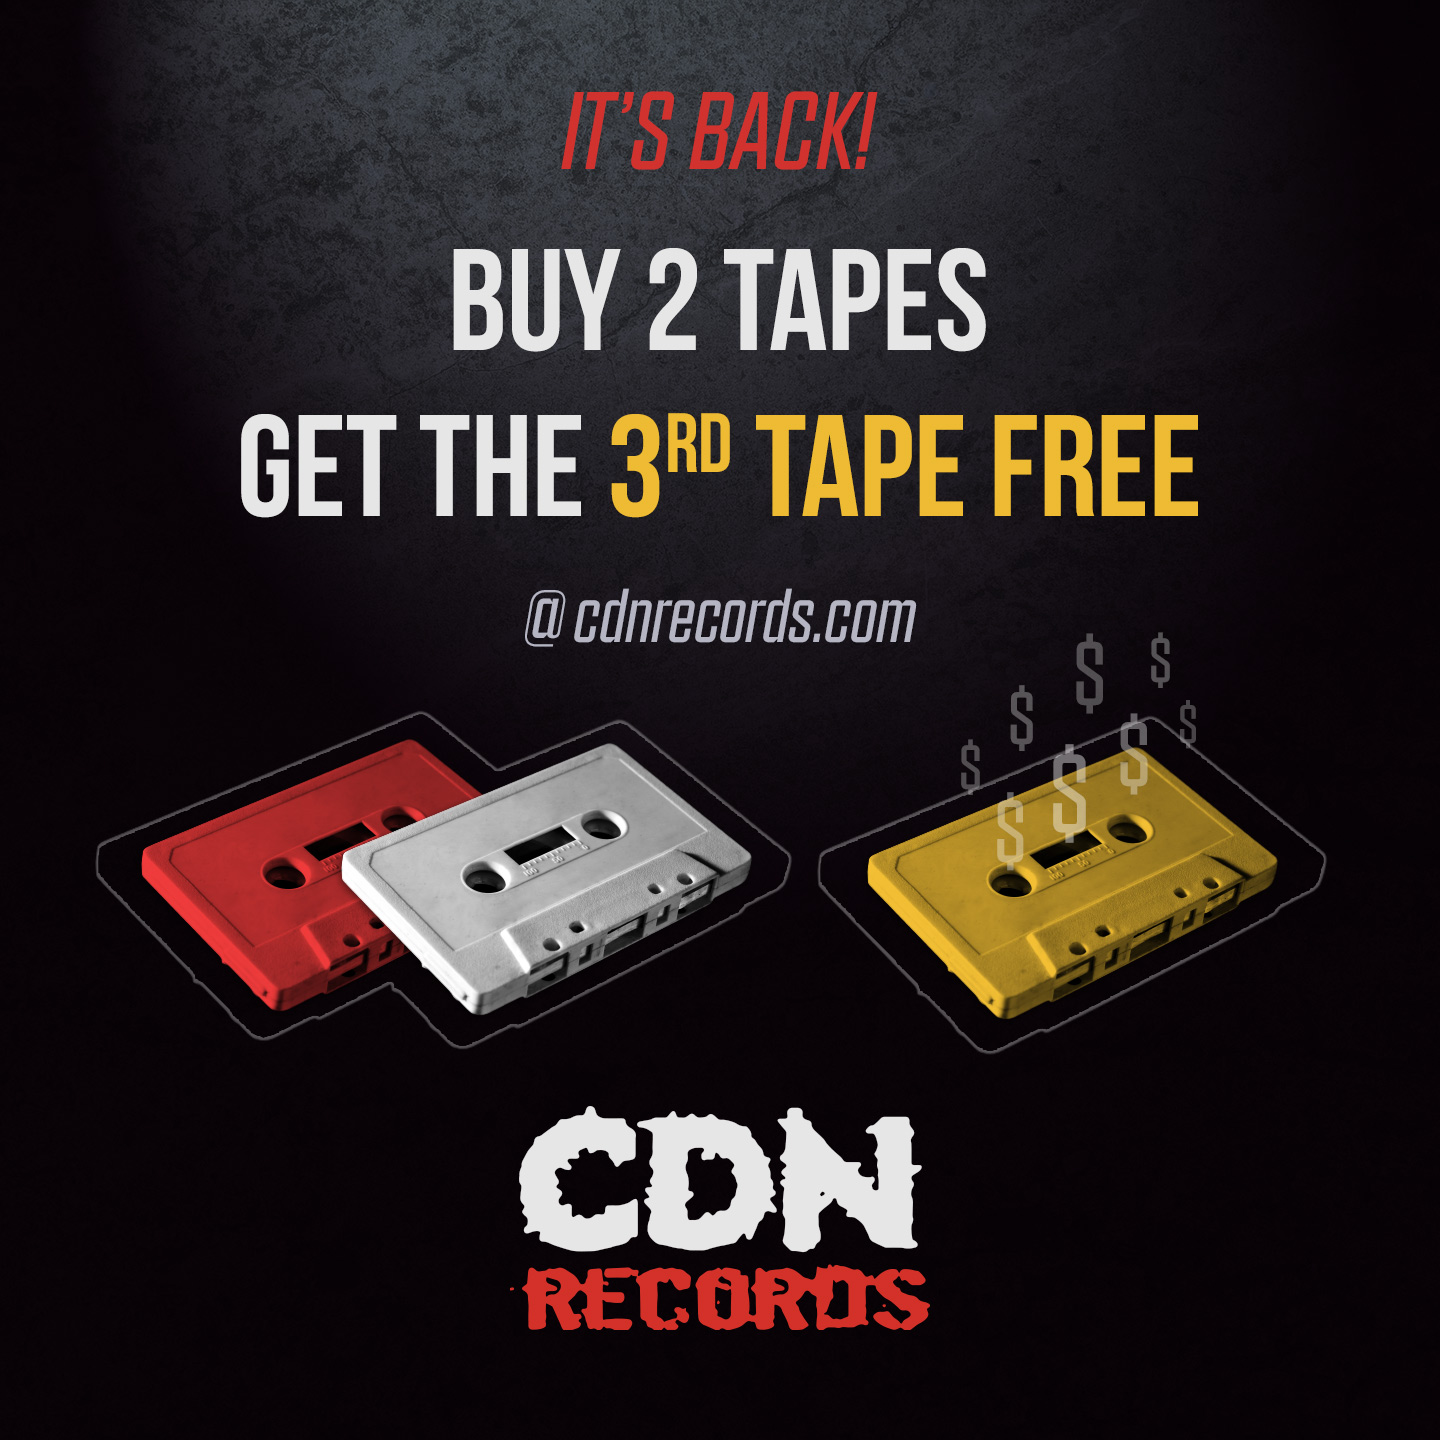 Graphic for Buy 2 Tapes Get 3rd Free promo